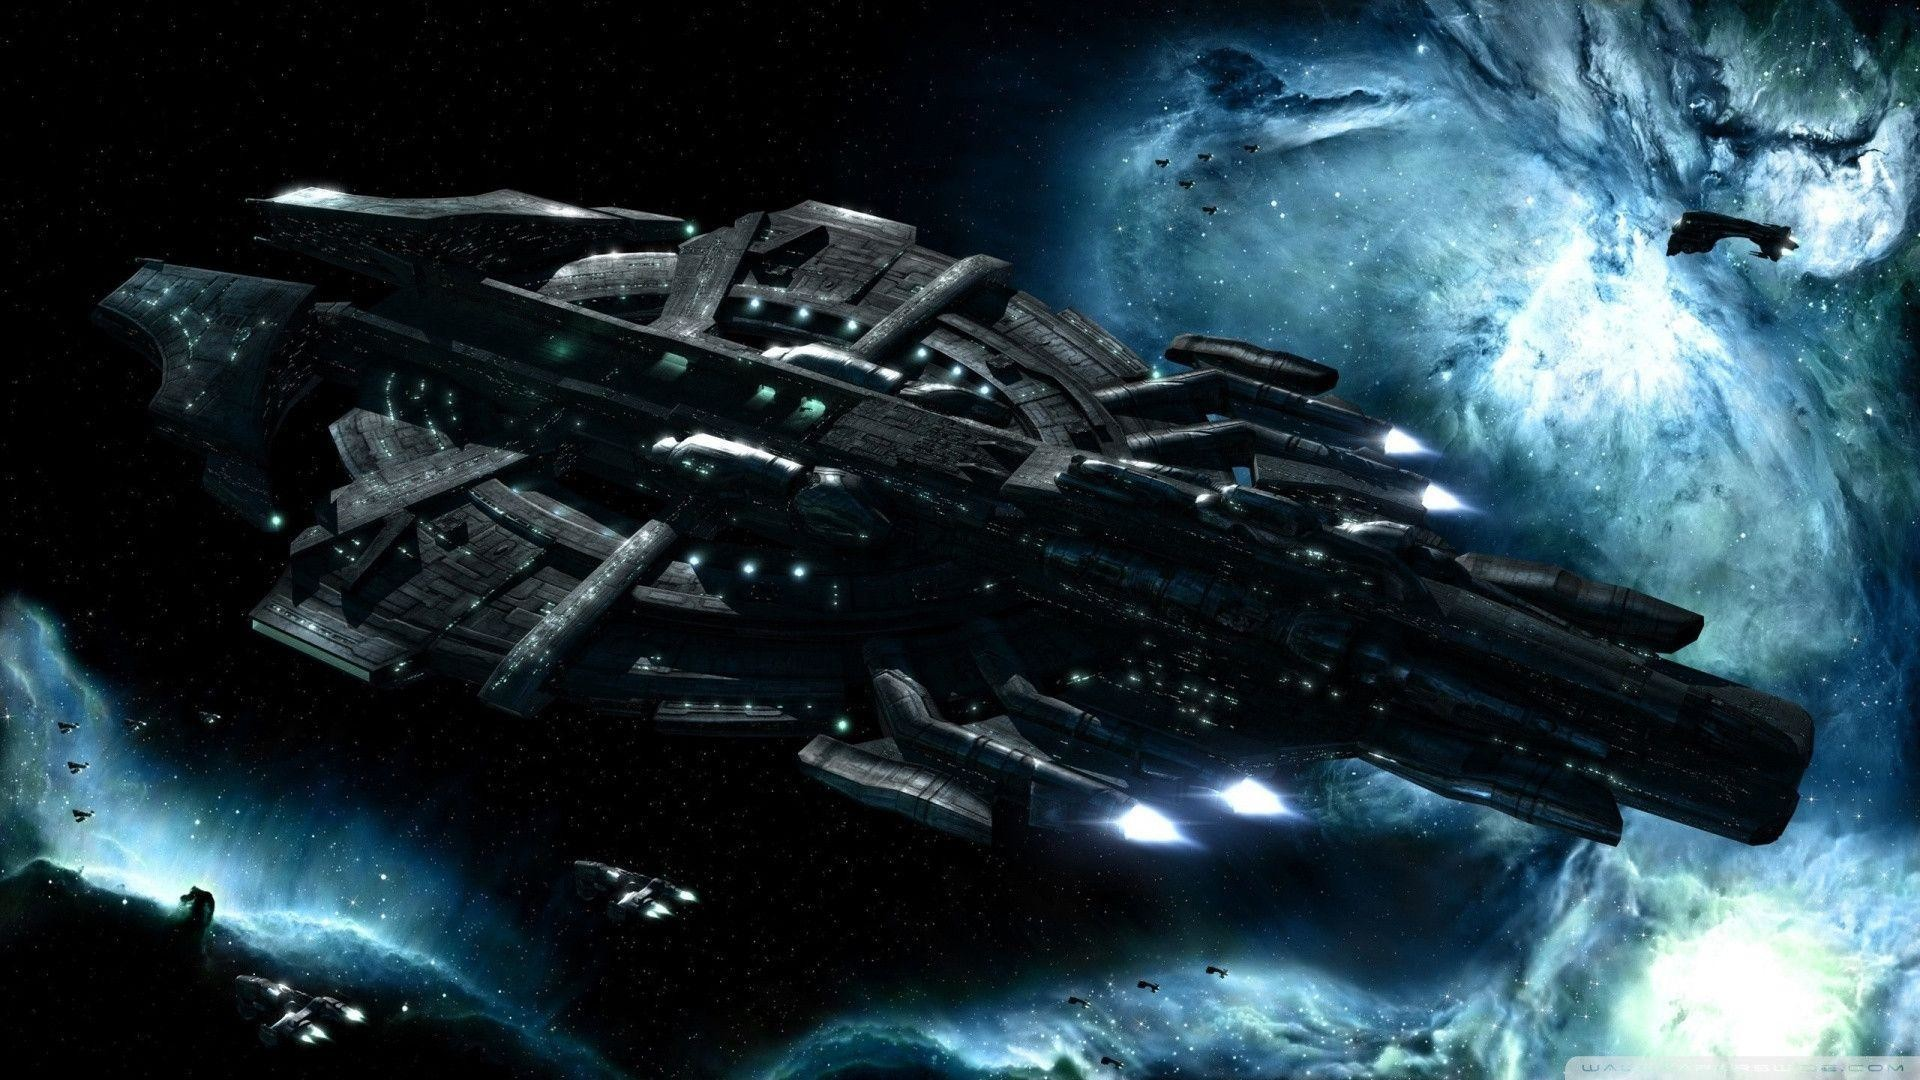 1920x1080 Spaceship Wallpaper 1920X1080 Hd Images 3 HD Wallpapers | aduphoto.